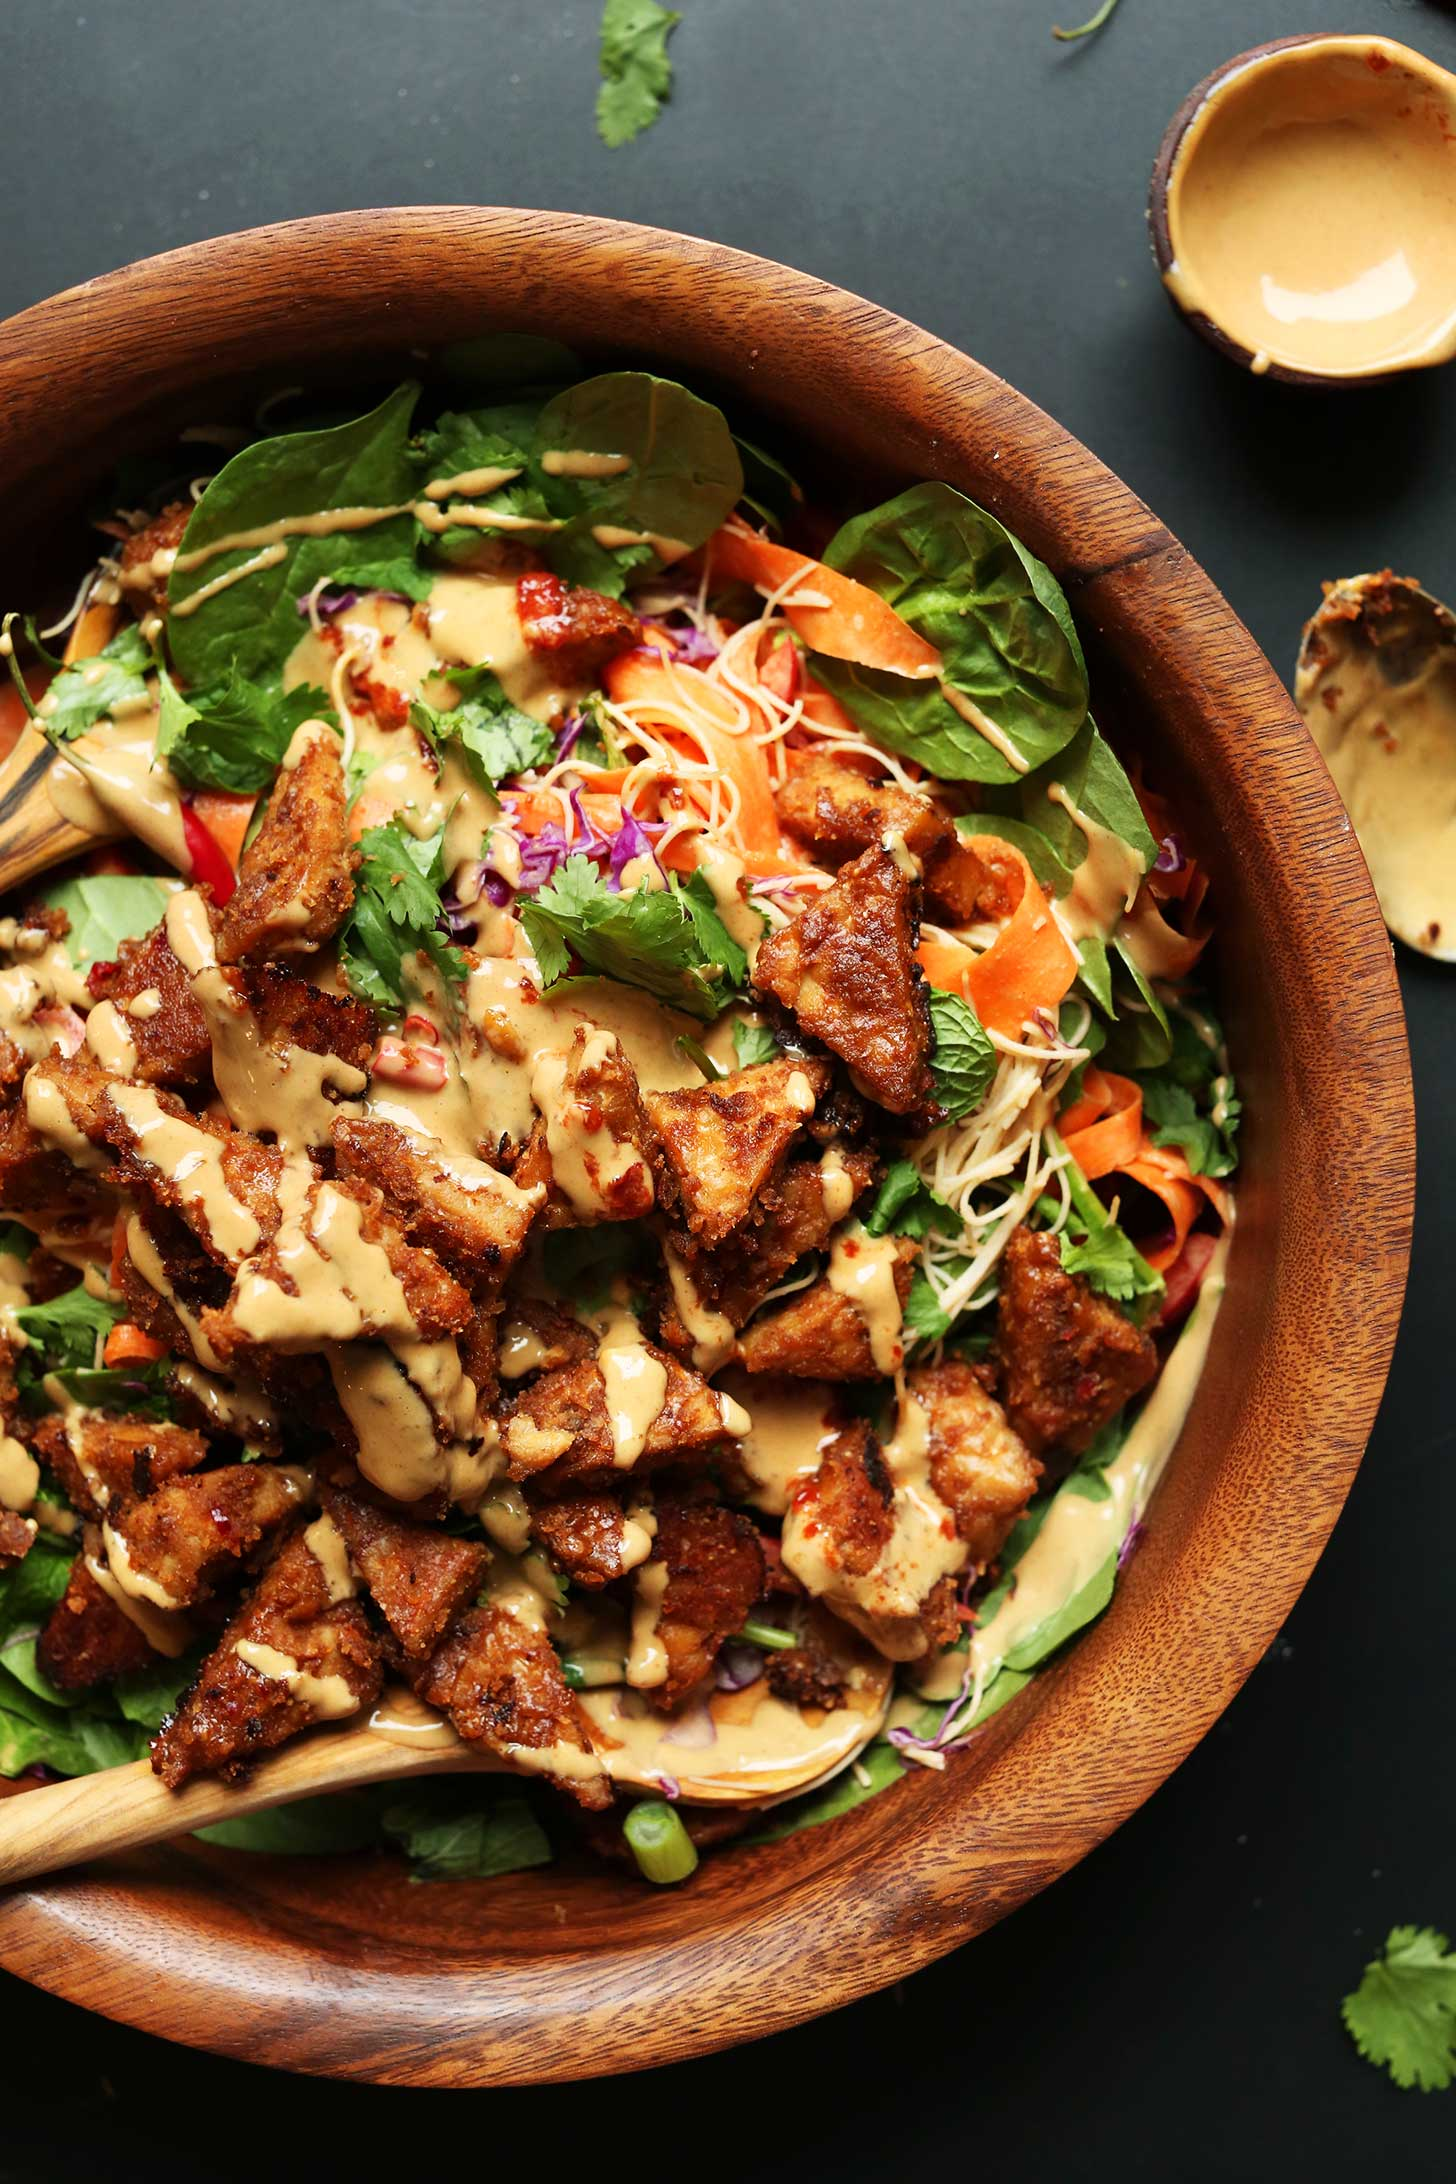 Beautiful wood bowl full of Thai Salad with Marinated Peanut Tempeh for a delicious vegan meal